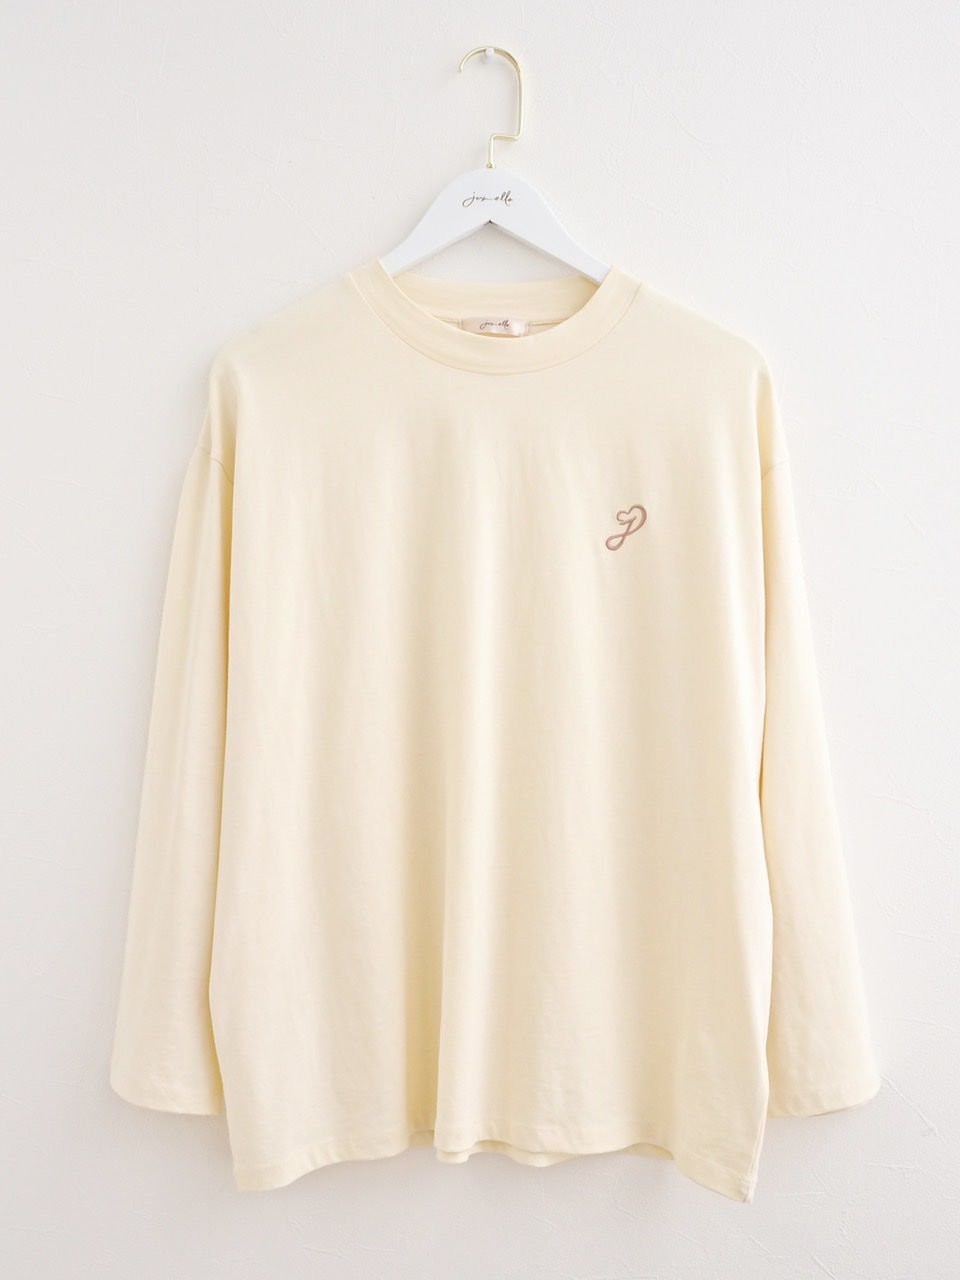 【SALE】ロゴカットソー